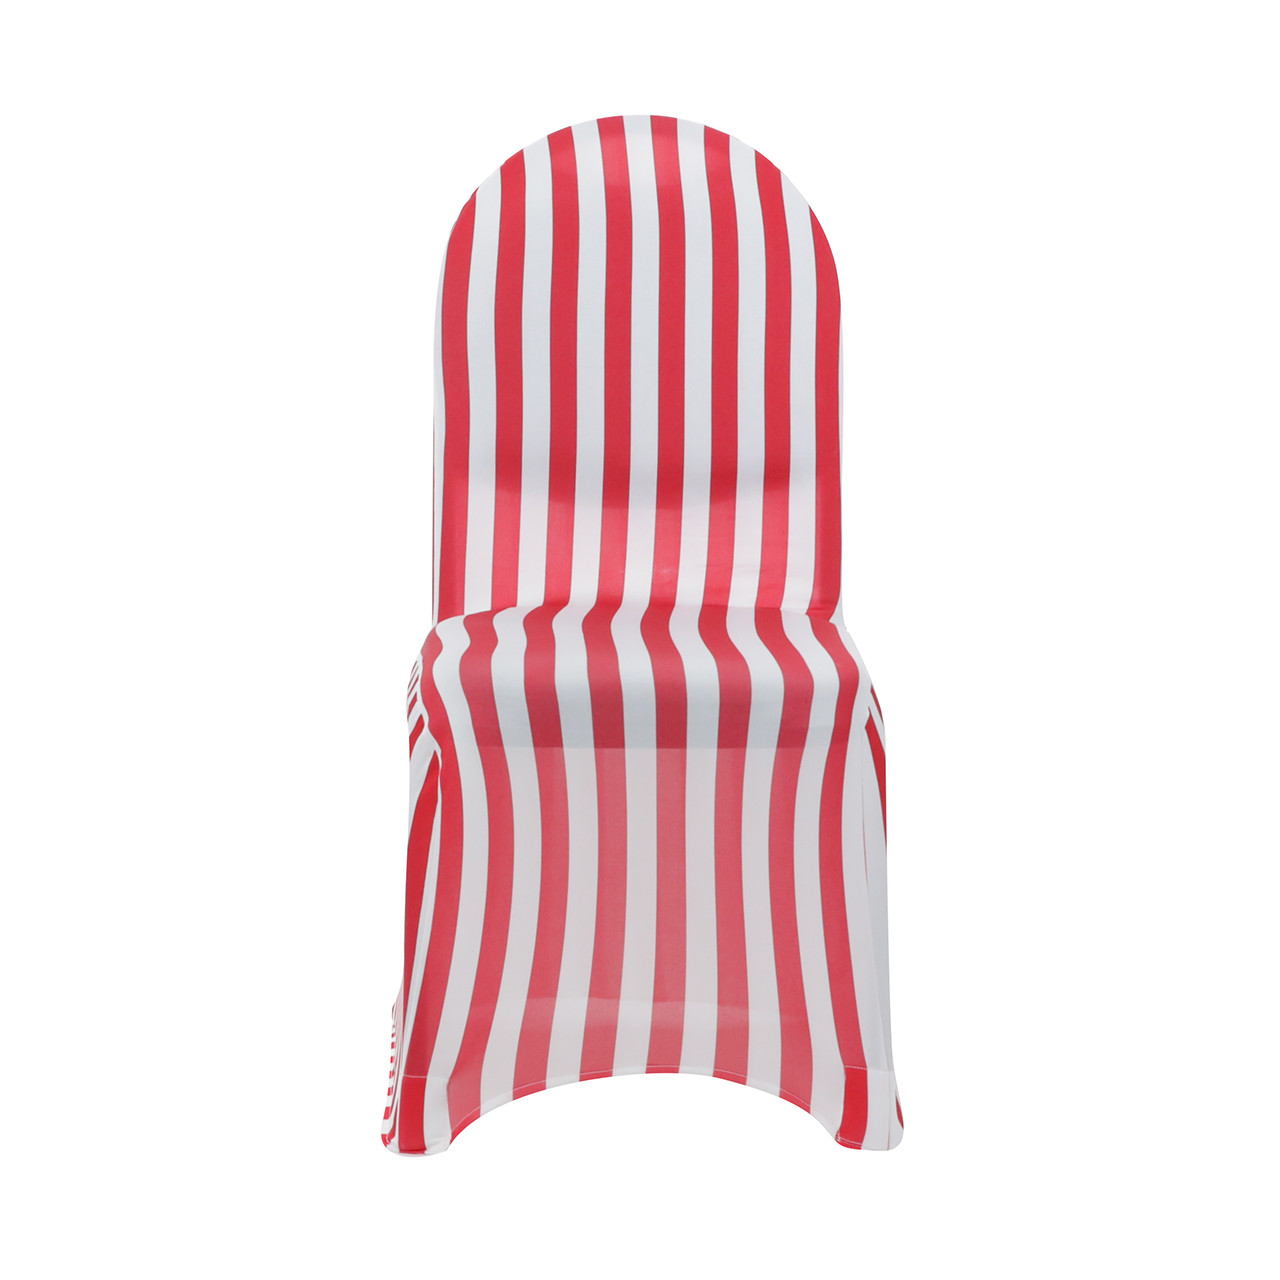 will folding chair covers fit banquet chairs office with attached desk stretch spandex cover striped white and red your wholesale